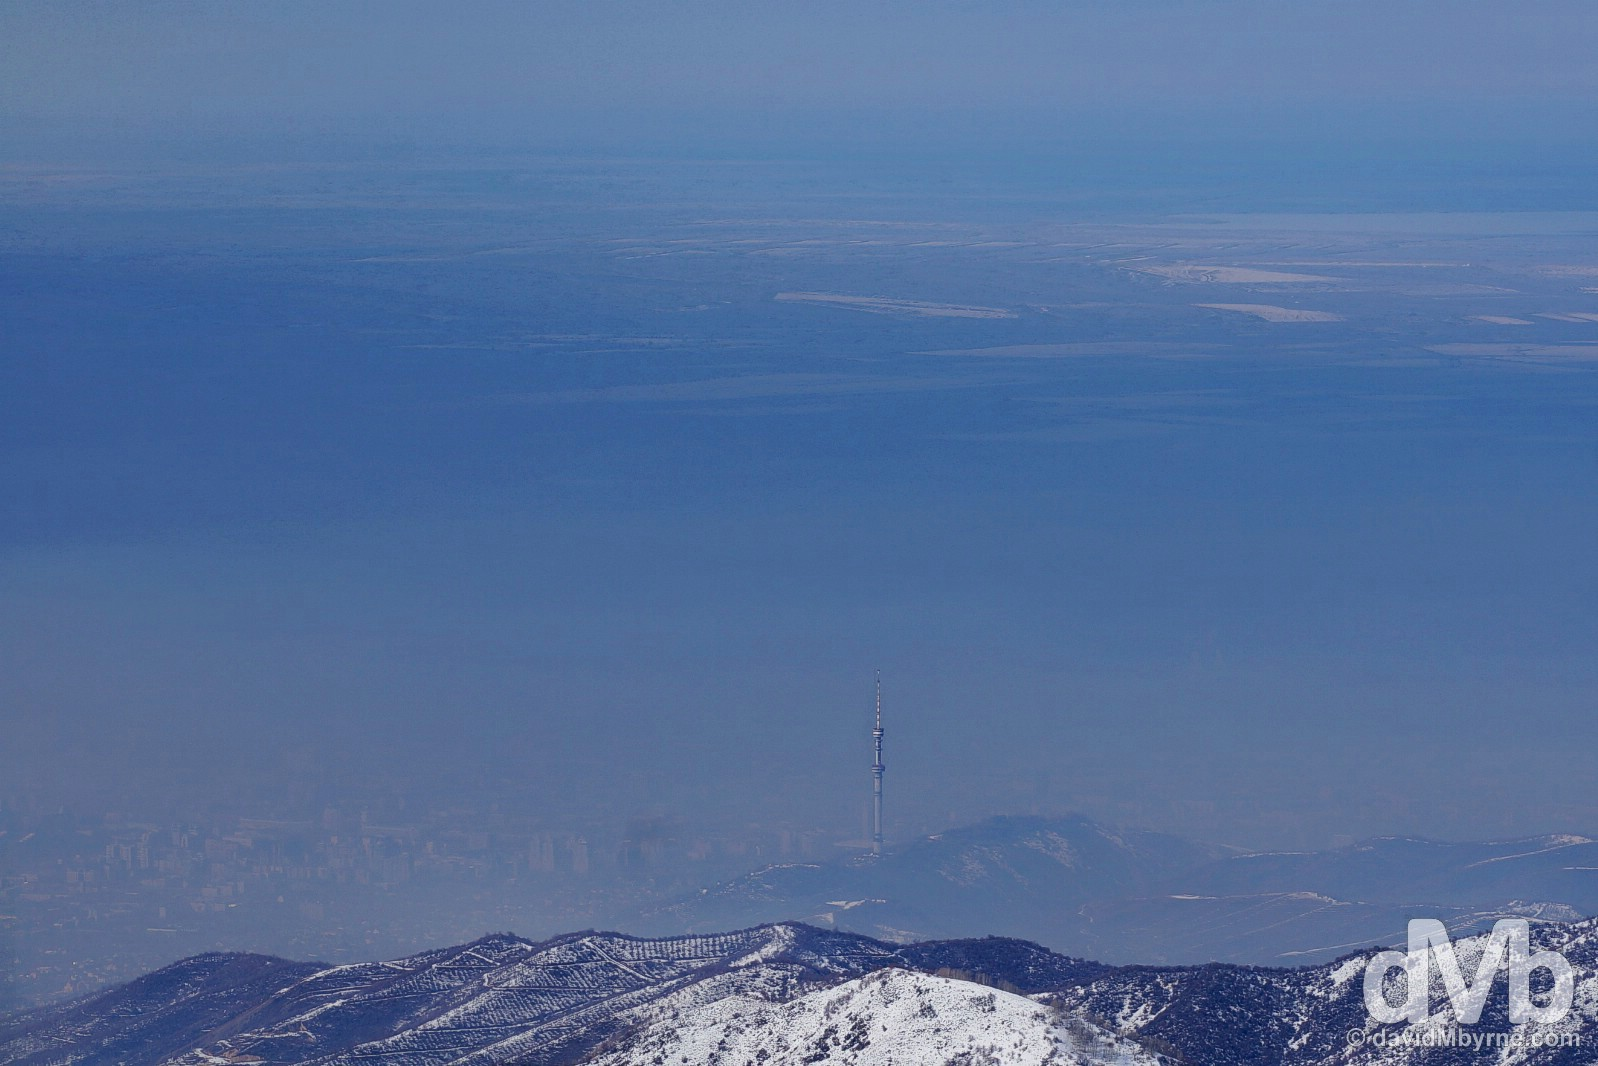 The city of Almaty as seen from the middle station of the Shymbulak Ski Resort in the Zailiysky Alatau range in southern Kazakhstan. February 14, 2015.